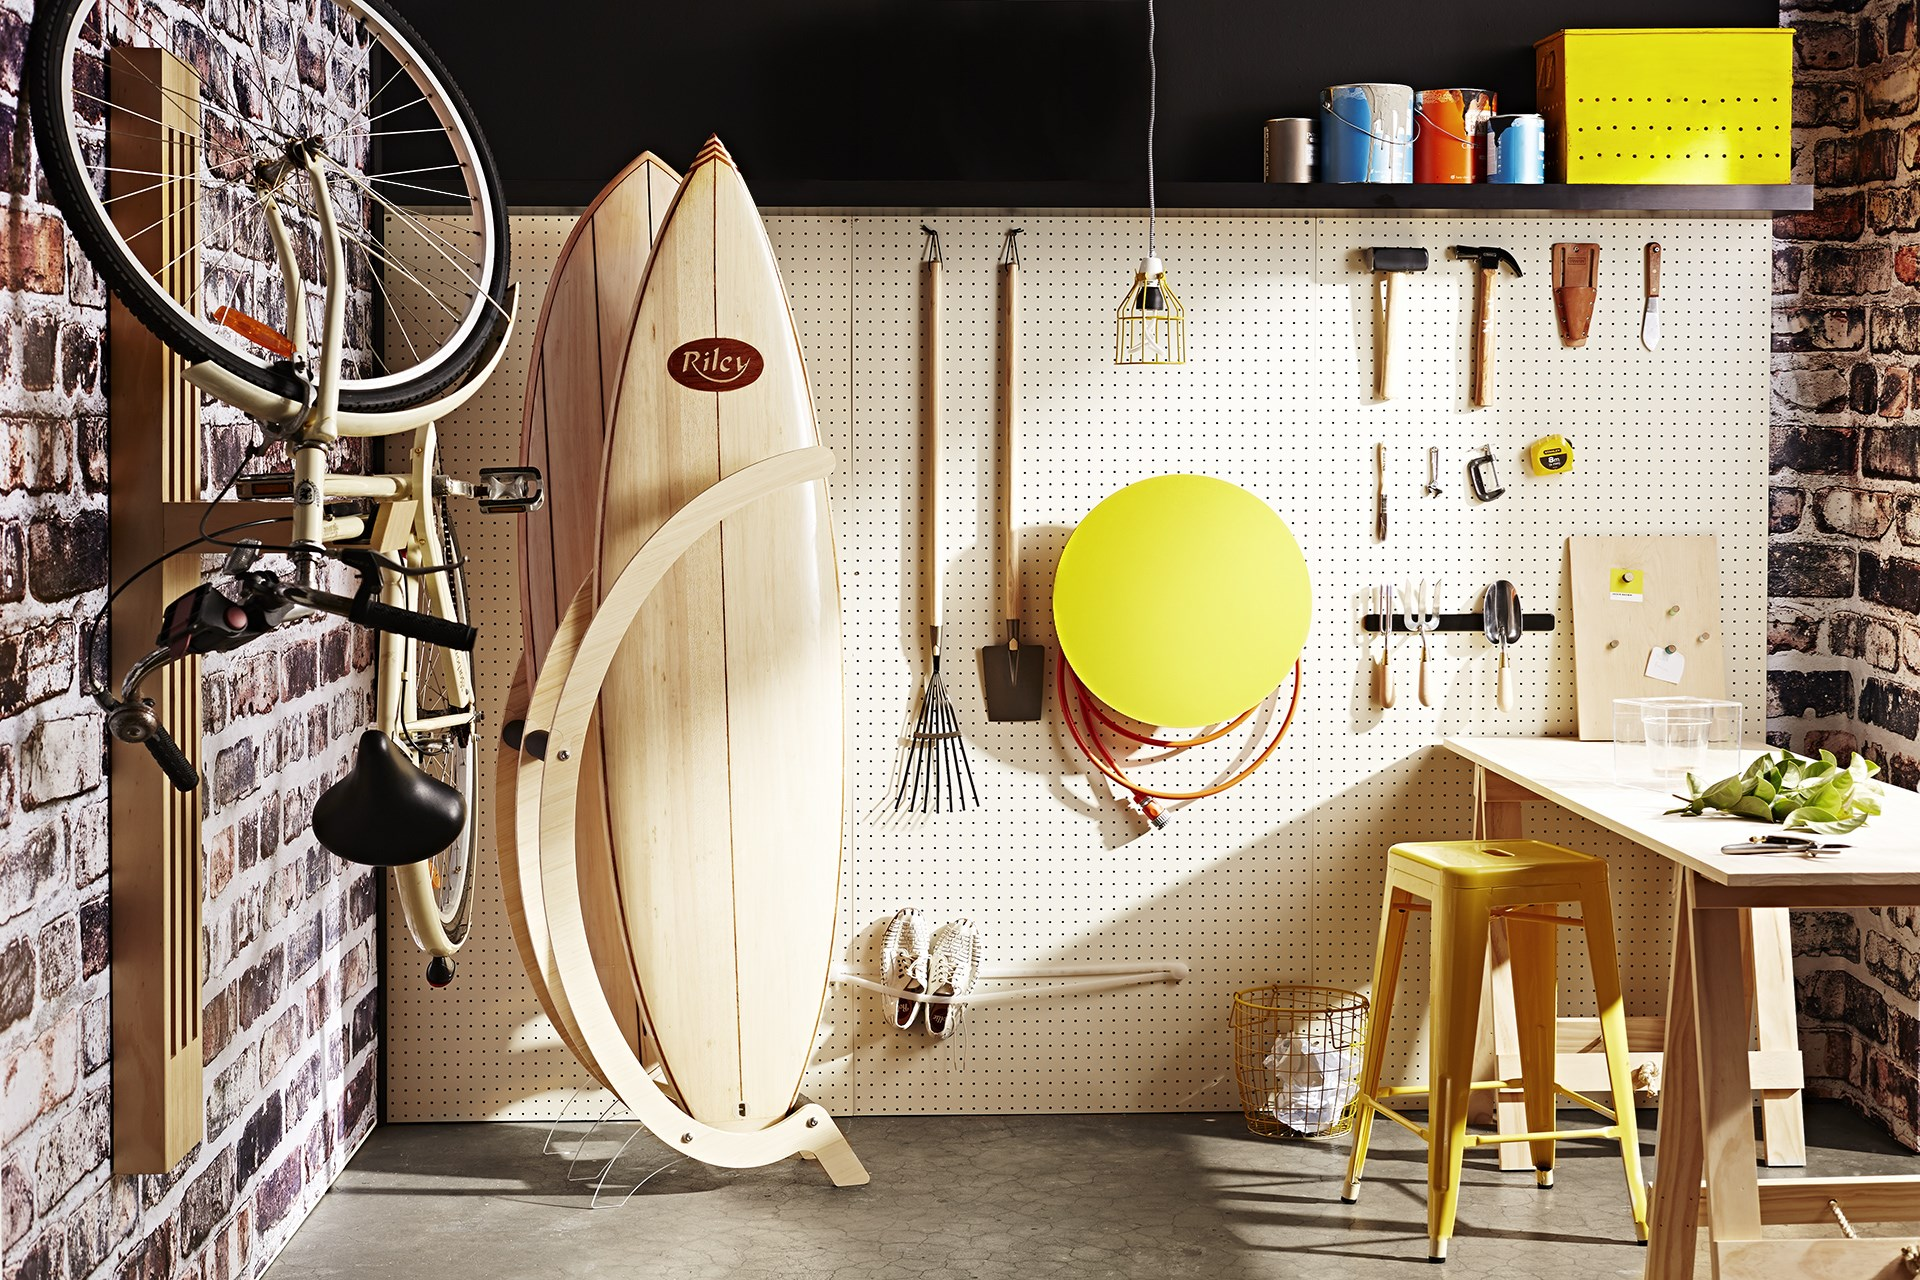 """Get your garage organised with [ingenious storage solutions](http://www.homestolove.com.au/space-saving-garage-storage-solutions-1611 target=""""_blank"""") that will enable you to use the space to its full potential. Photo: Brett Stevens / *Australian House & Garden*"""